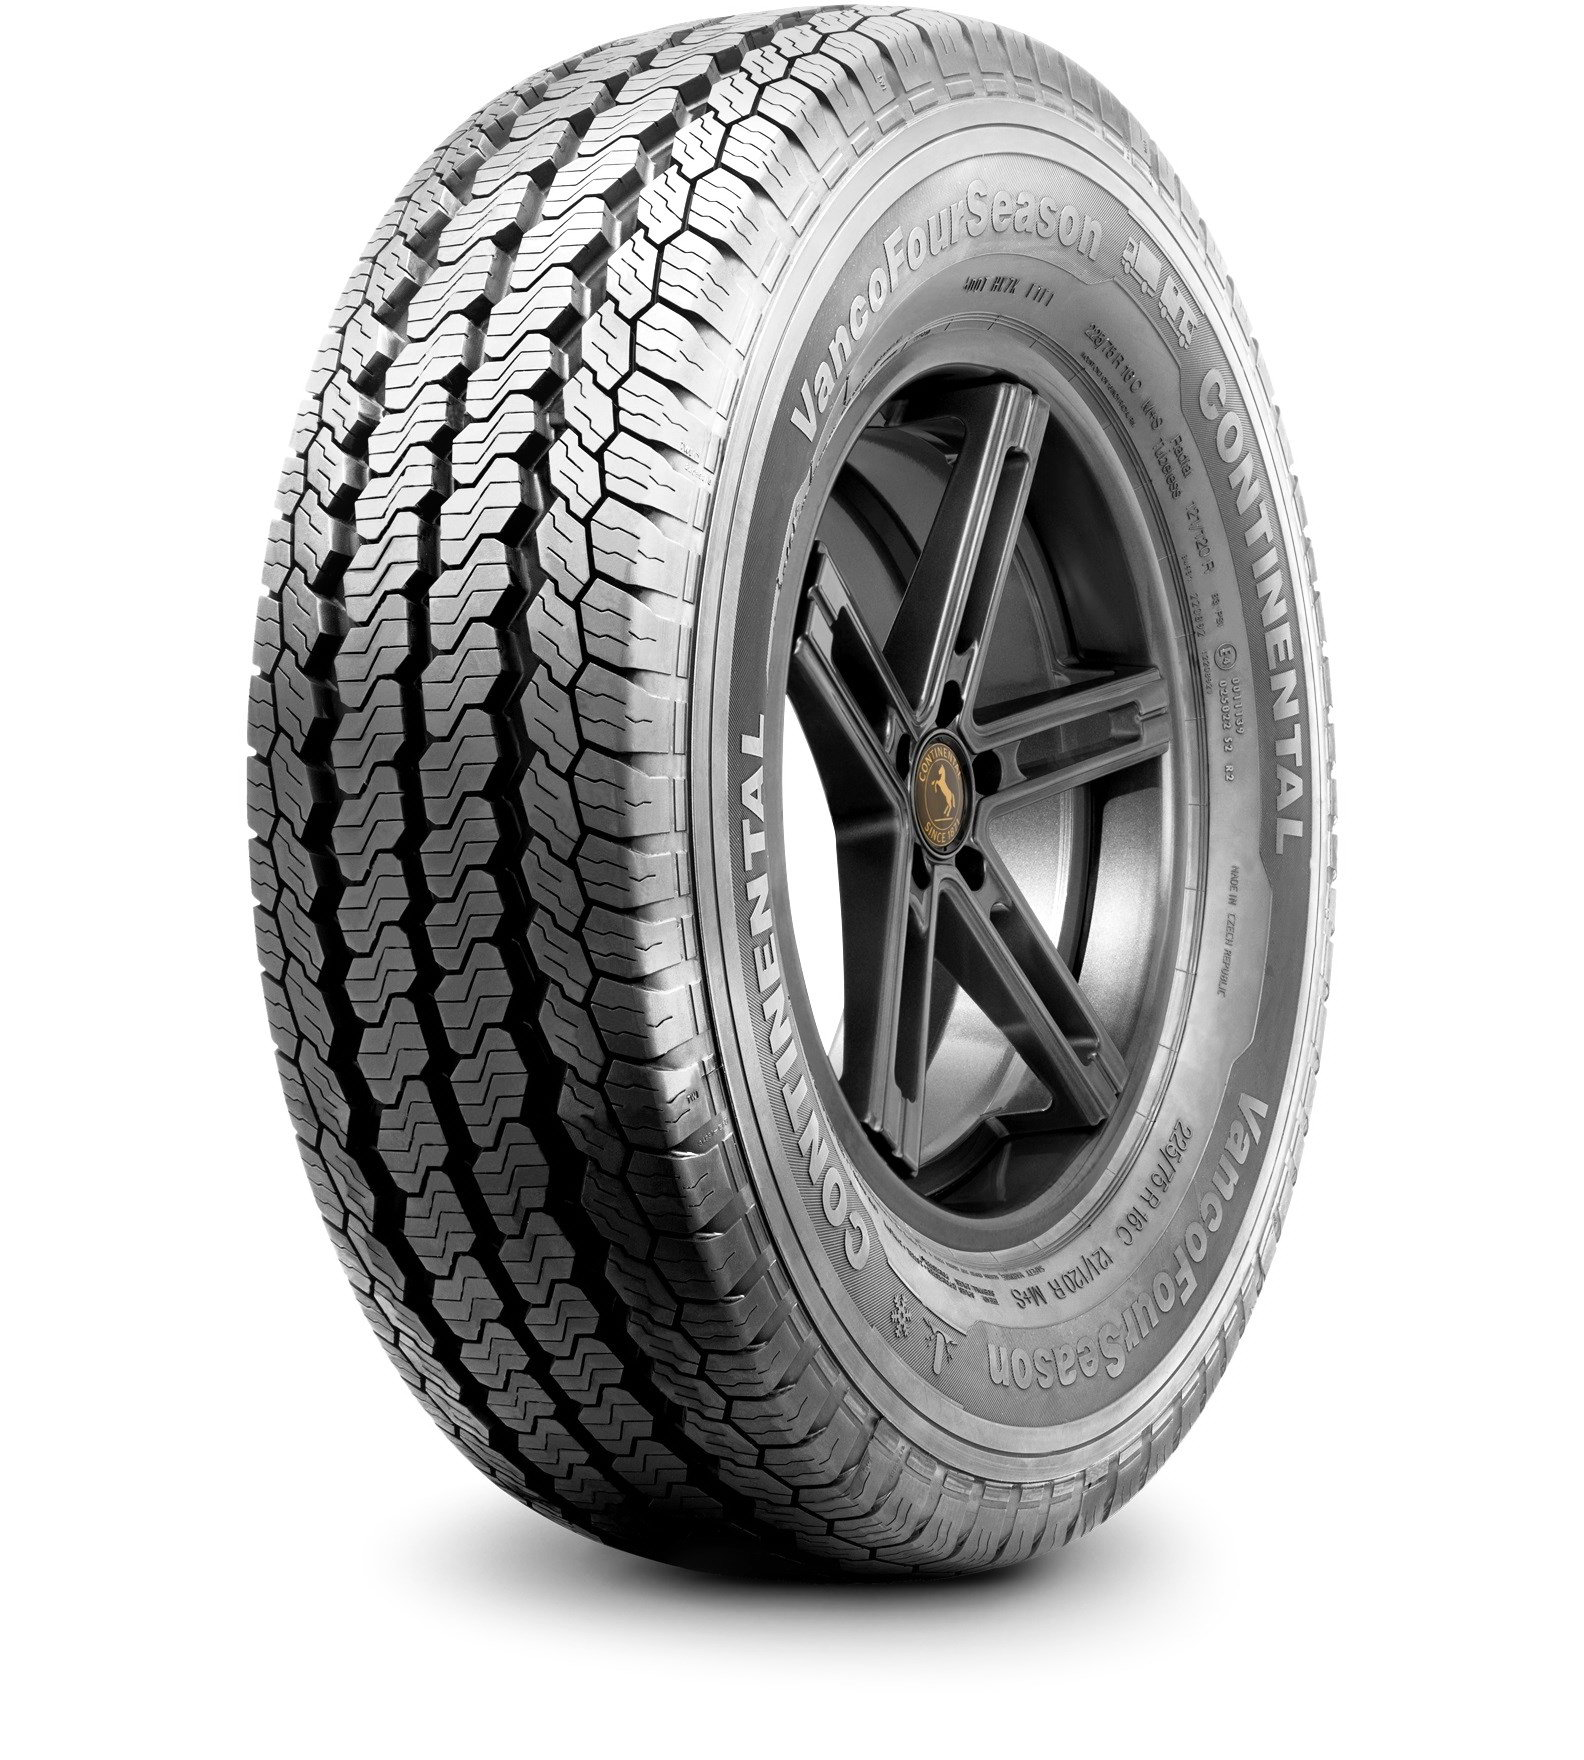 Anvelope all seasons CONTINENTAL VANCONTACT 4SEASON 8PR 225/65 R16C 112/110T